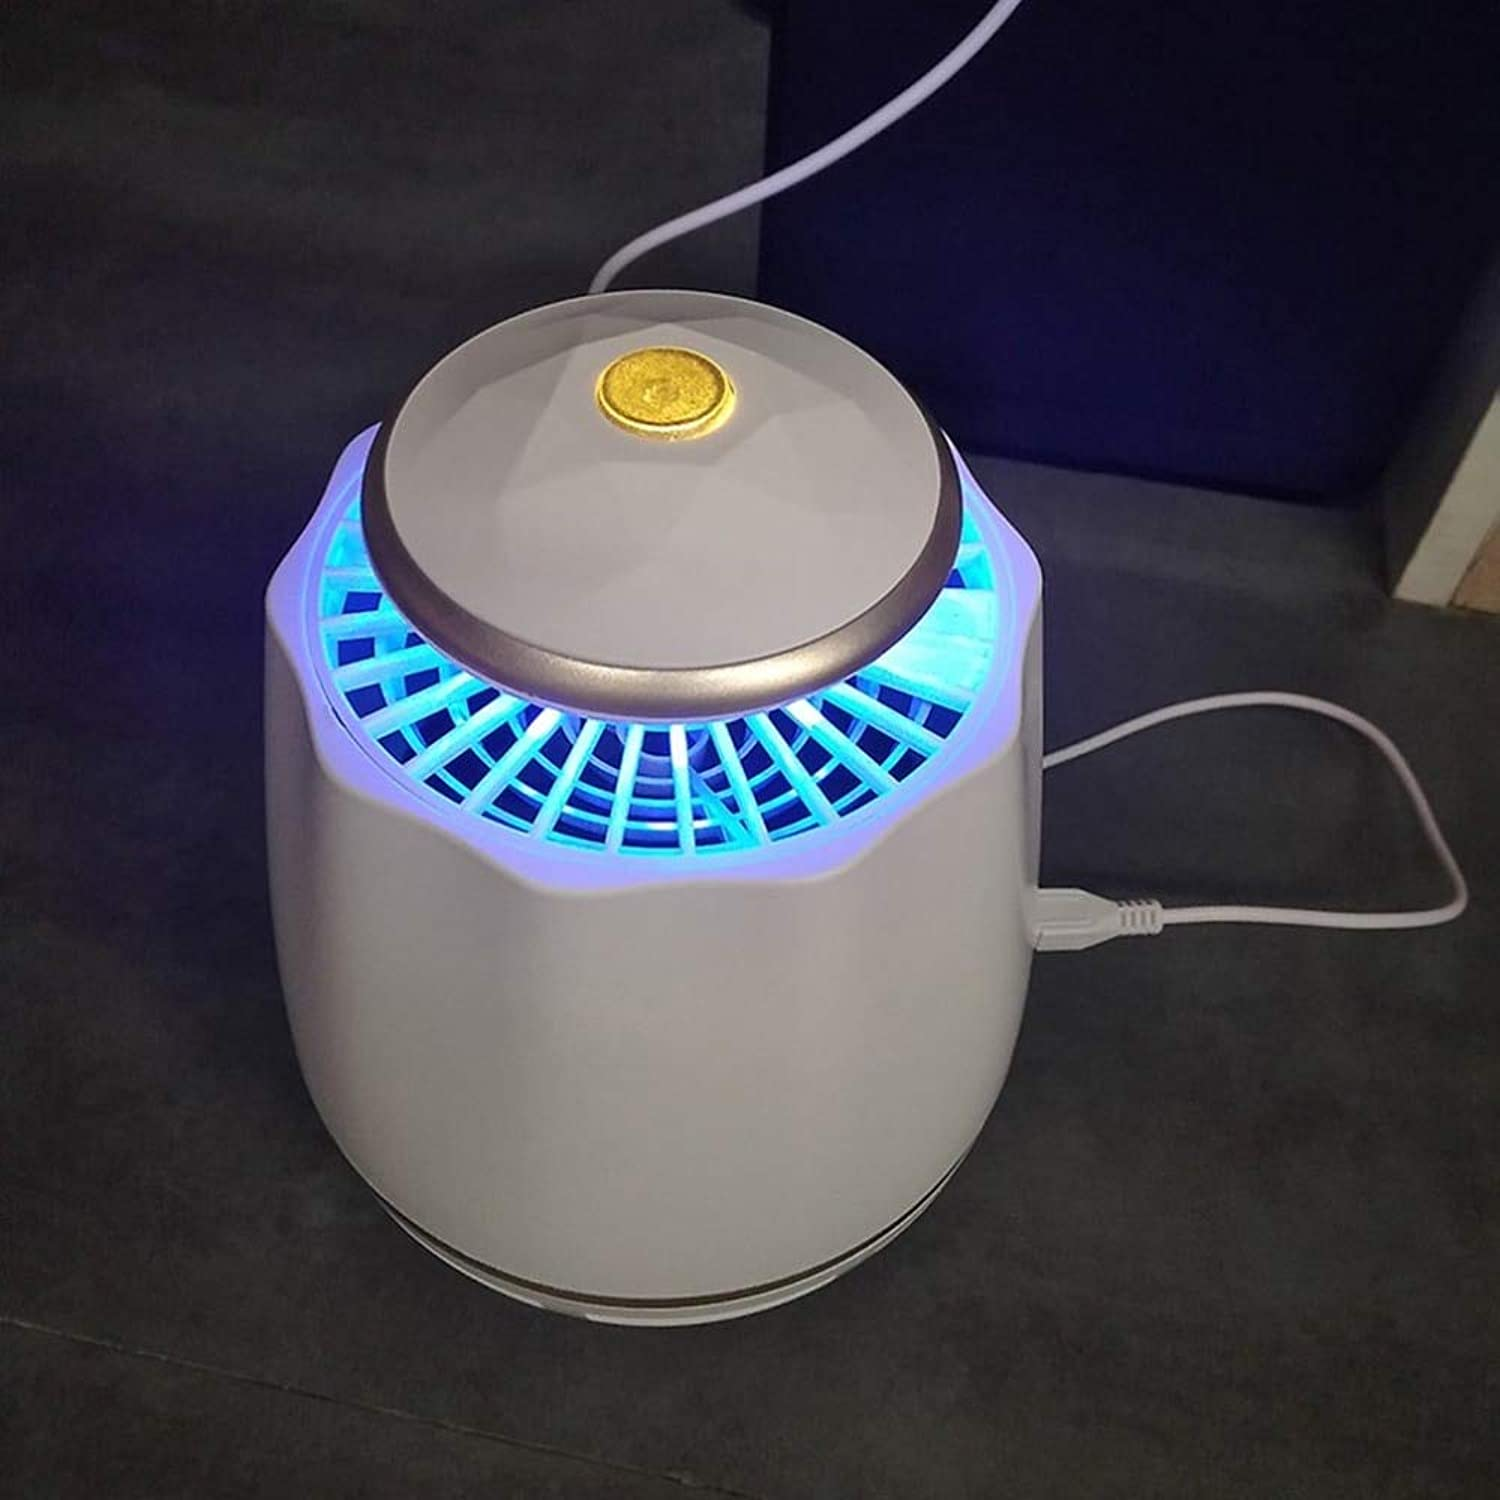 Intelligent Mosquito Killer USB Power Mosquito Repellent for Home Office Use Anti-Mosquito Insect Fly Inhaler LED Lamp Catcher   Spain